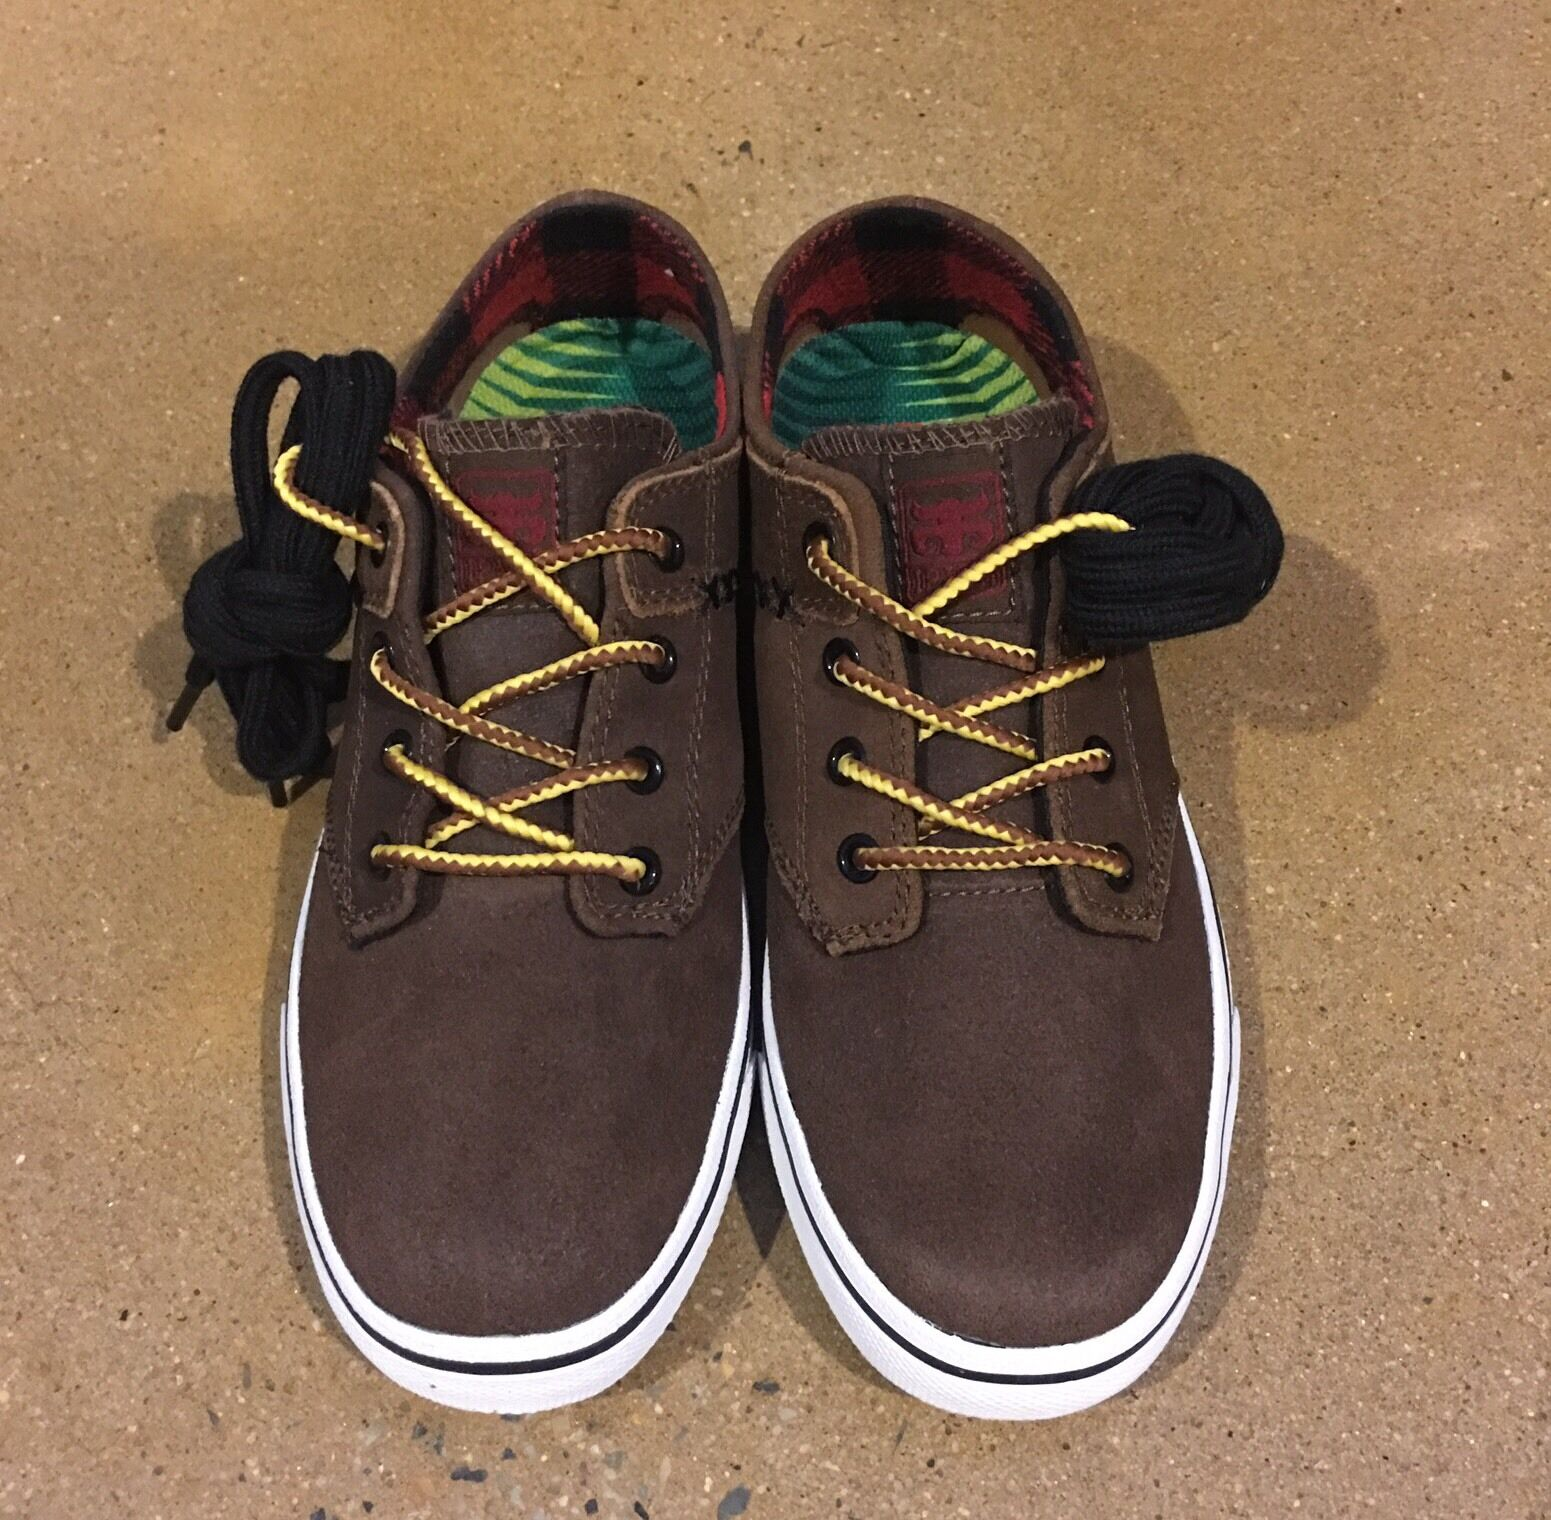 IPath Nomad S Dirt Cow Skull Size 6 US BMX DC Skate Shoes  Deadstock